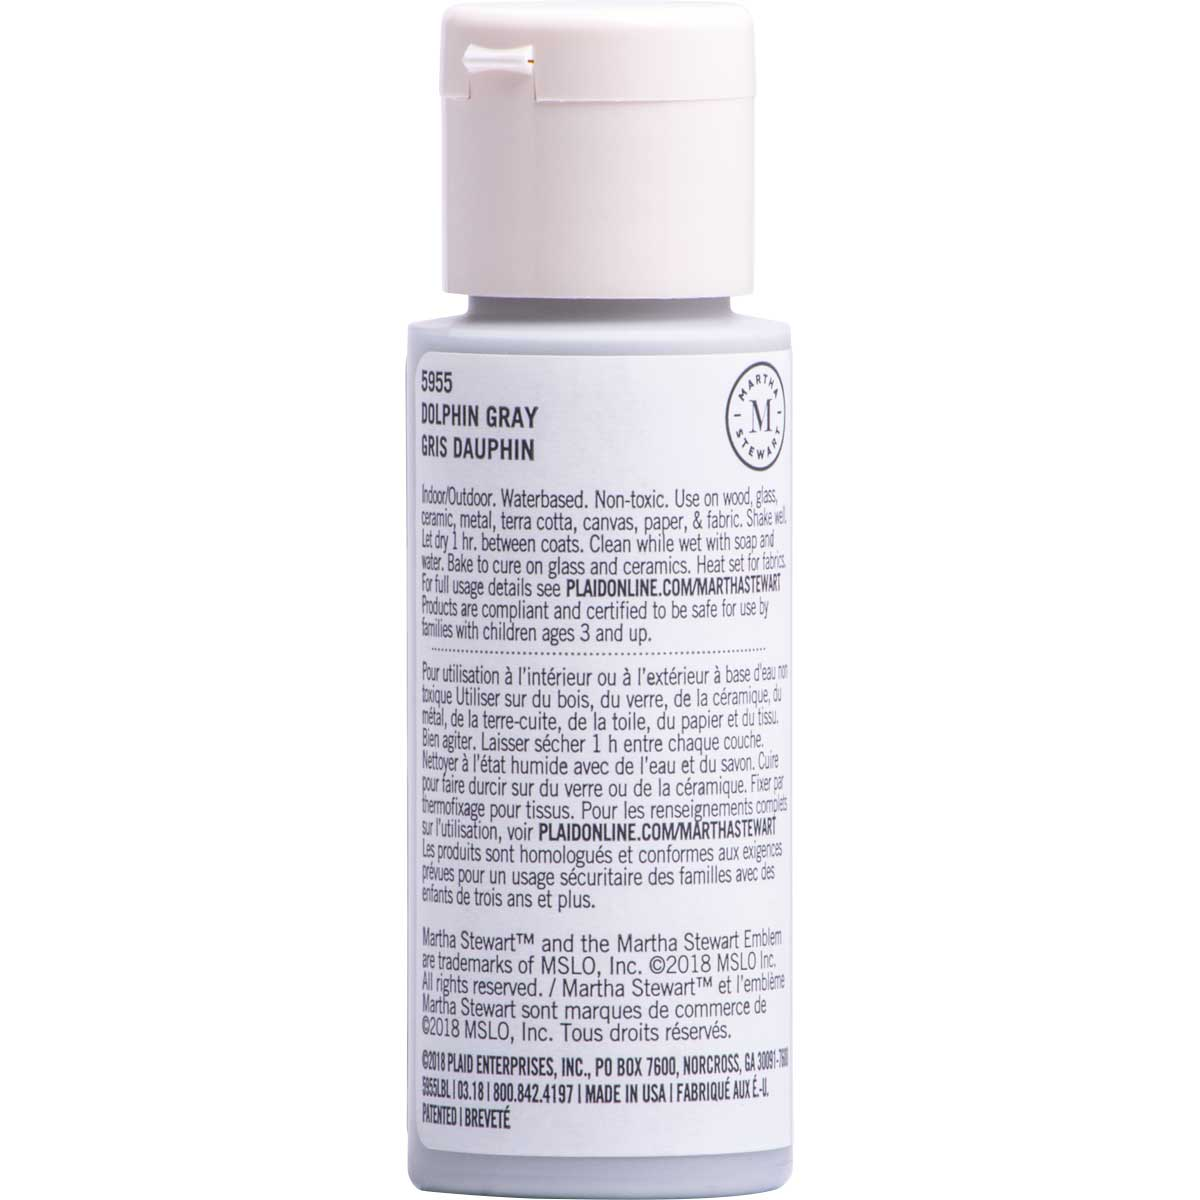 Martha Stewart ® Multi-Surface Satin Acrylic Craft Paint CPSIA - Dolphin Gray, 2 oz. - 5955